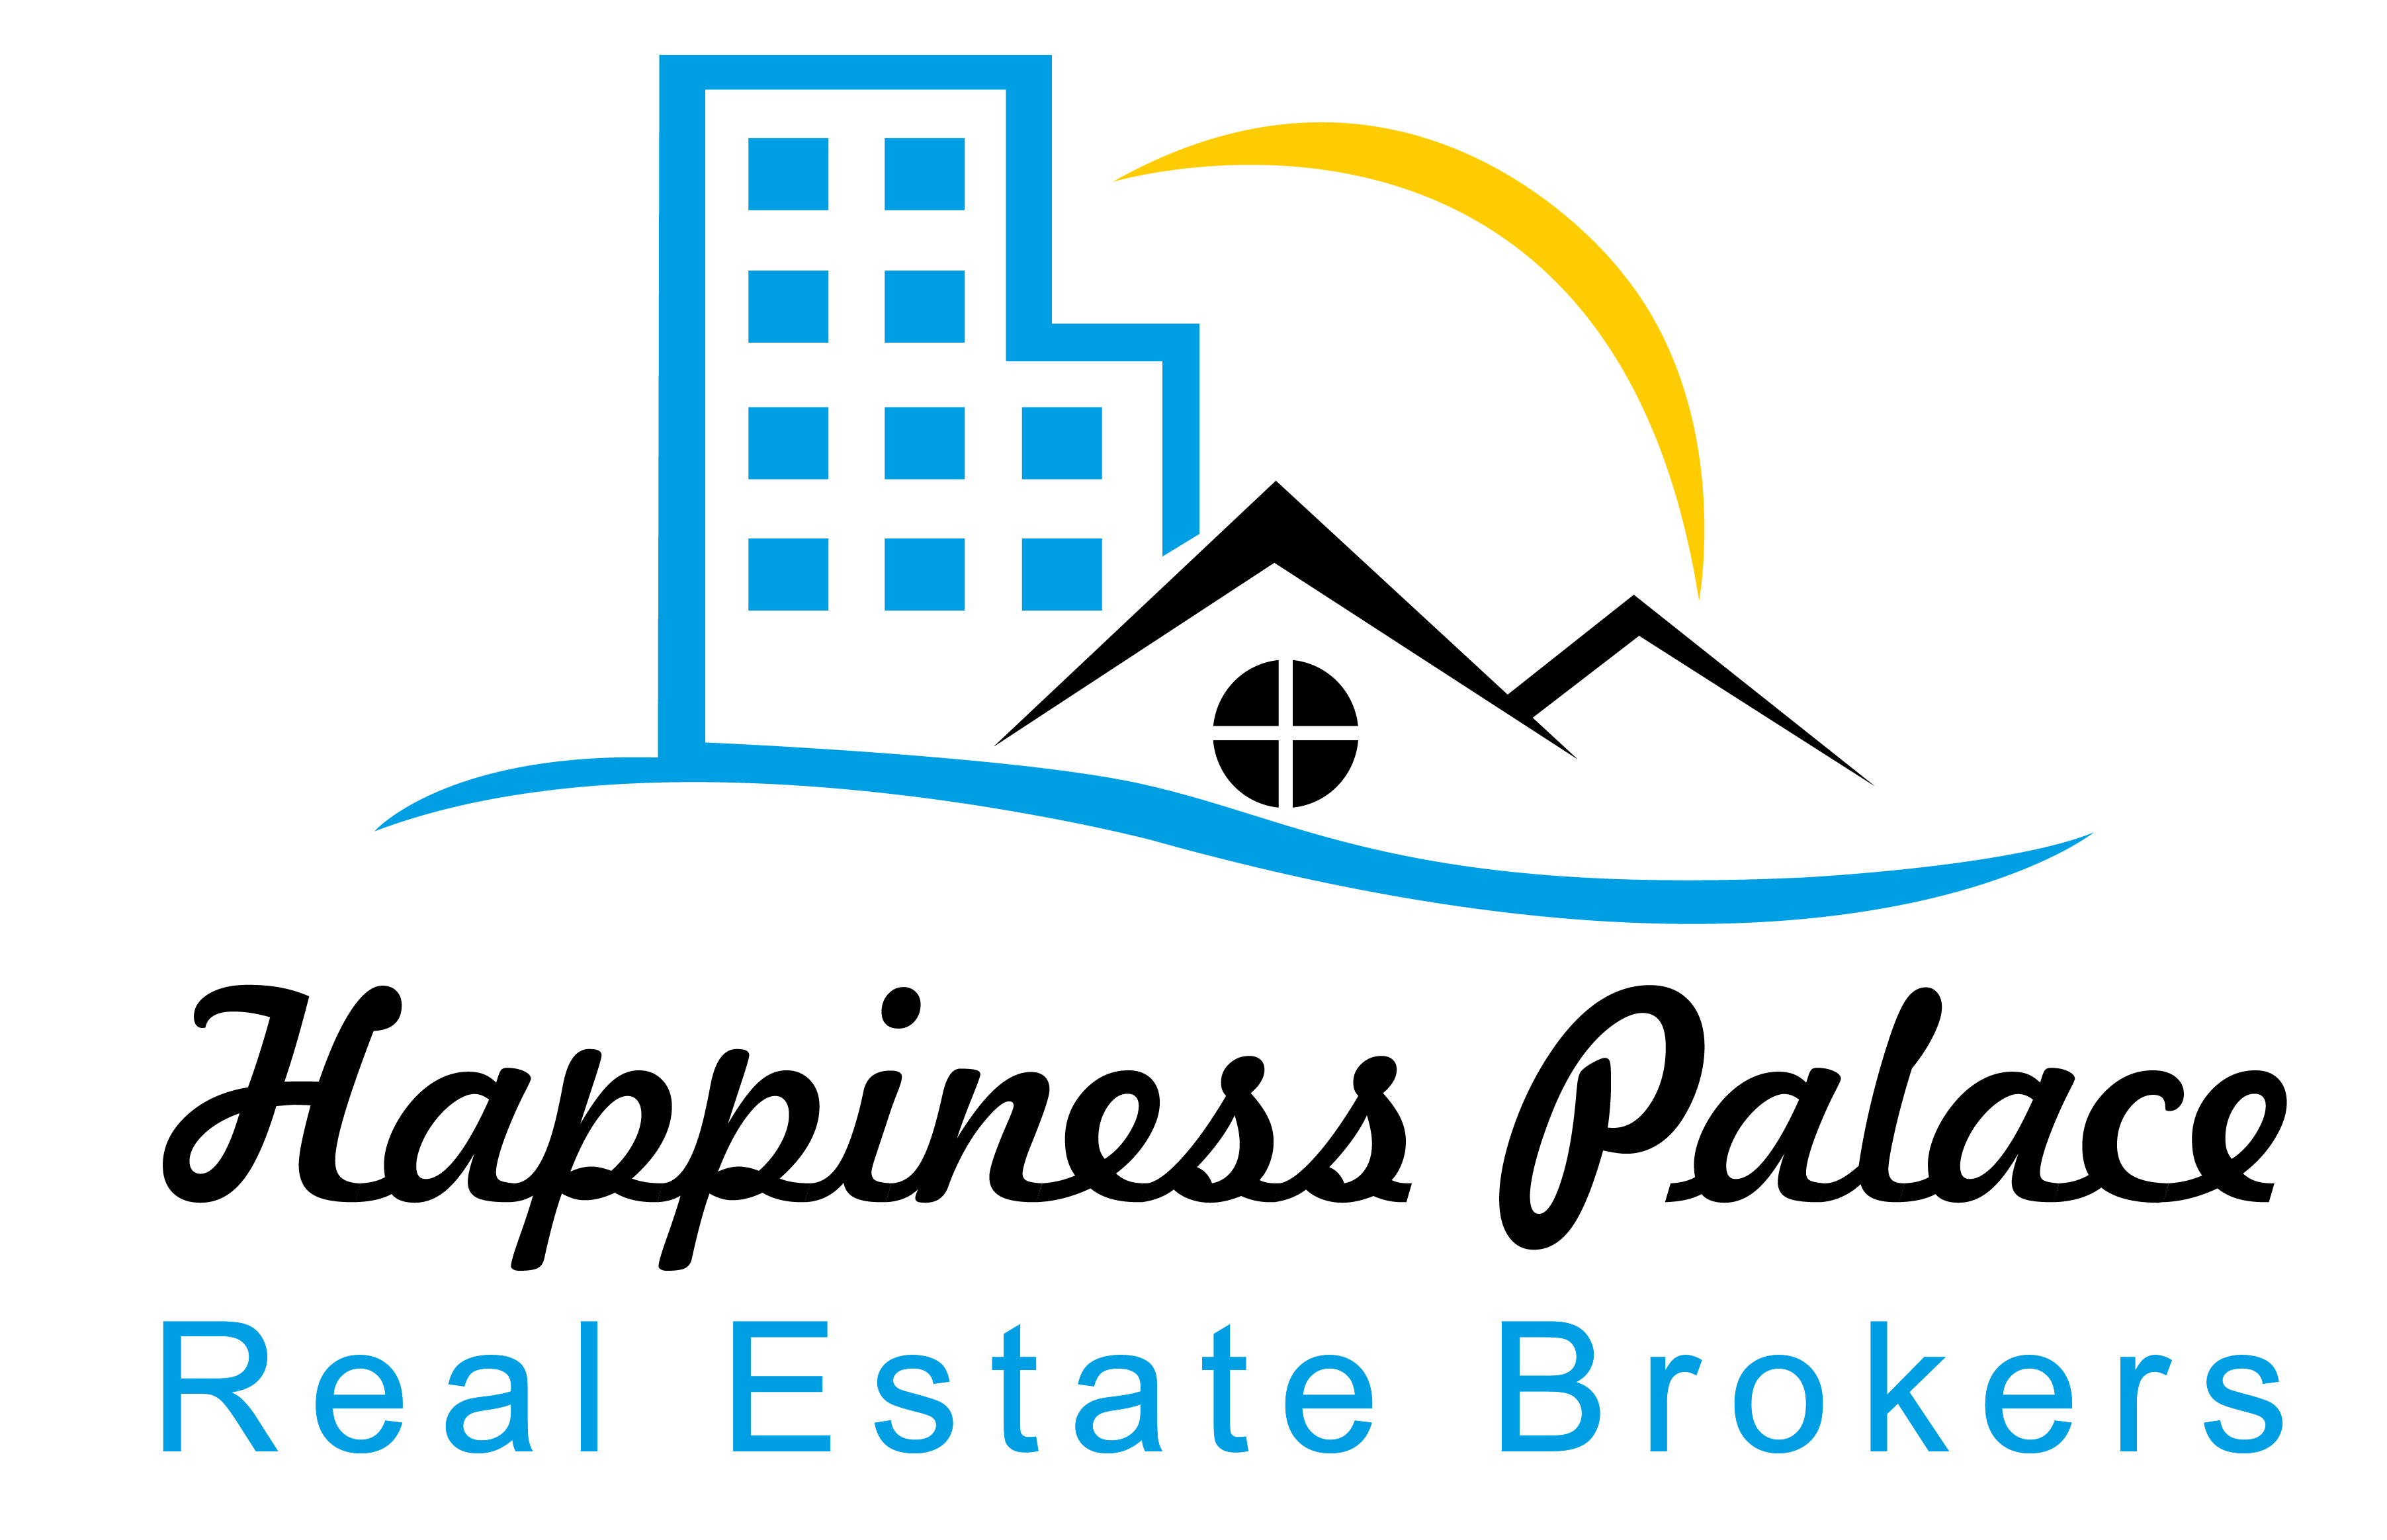 Happiness Palace Real Estate Brokers